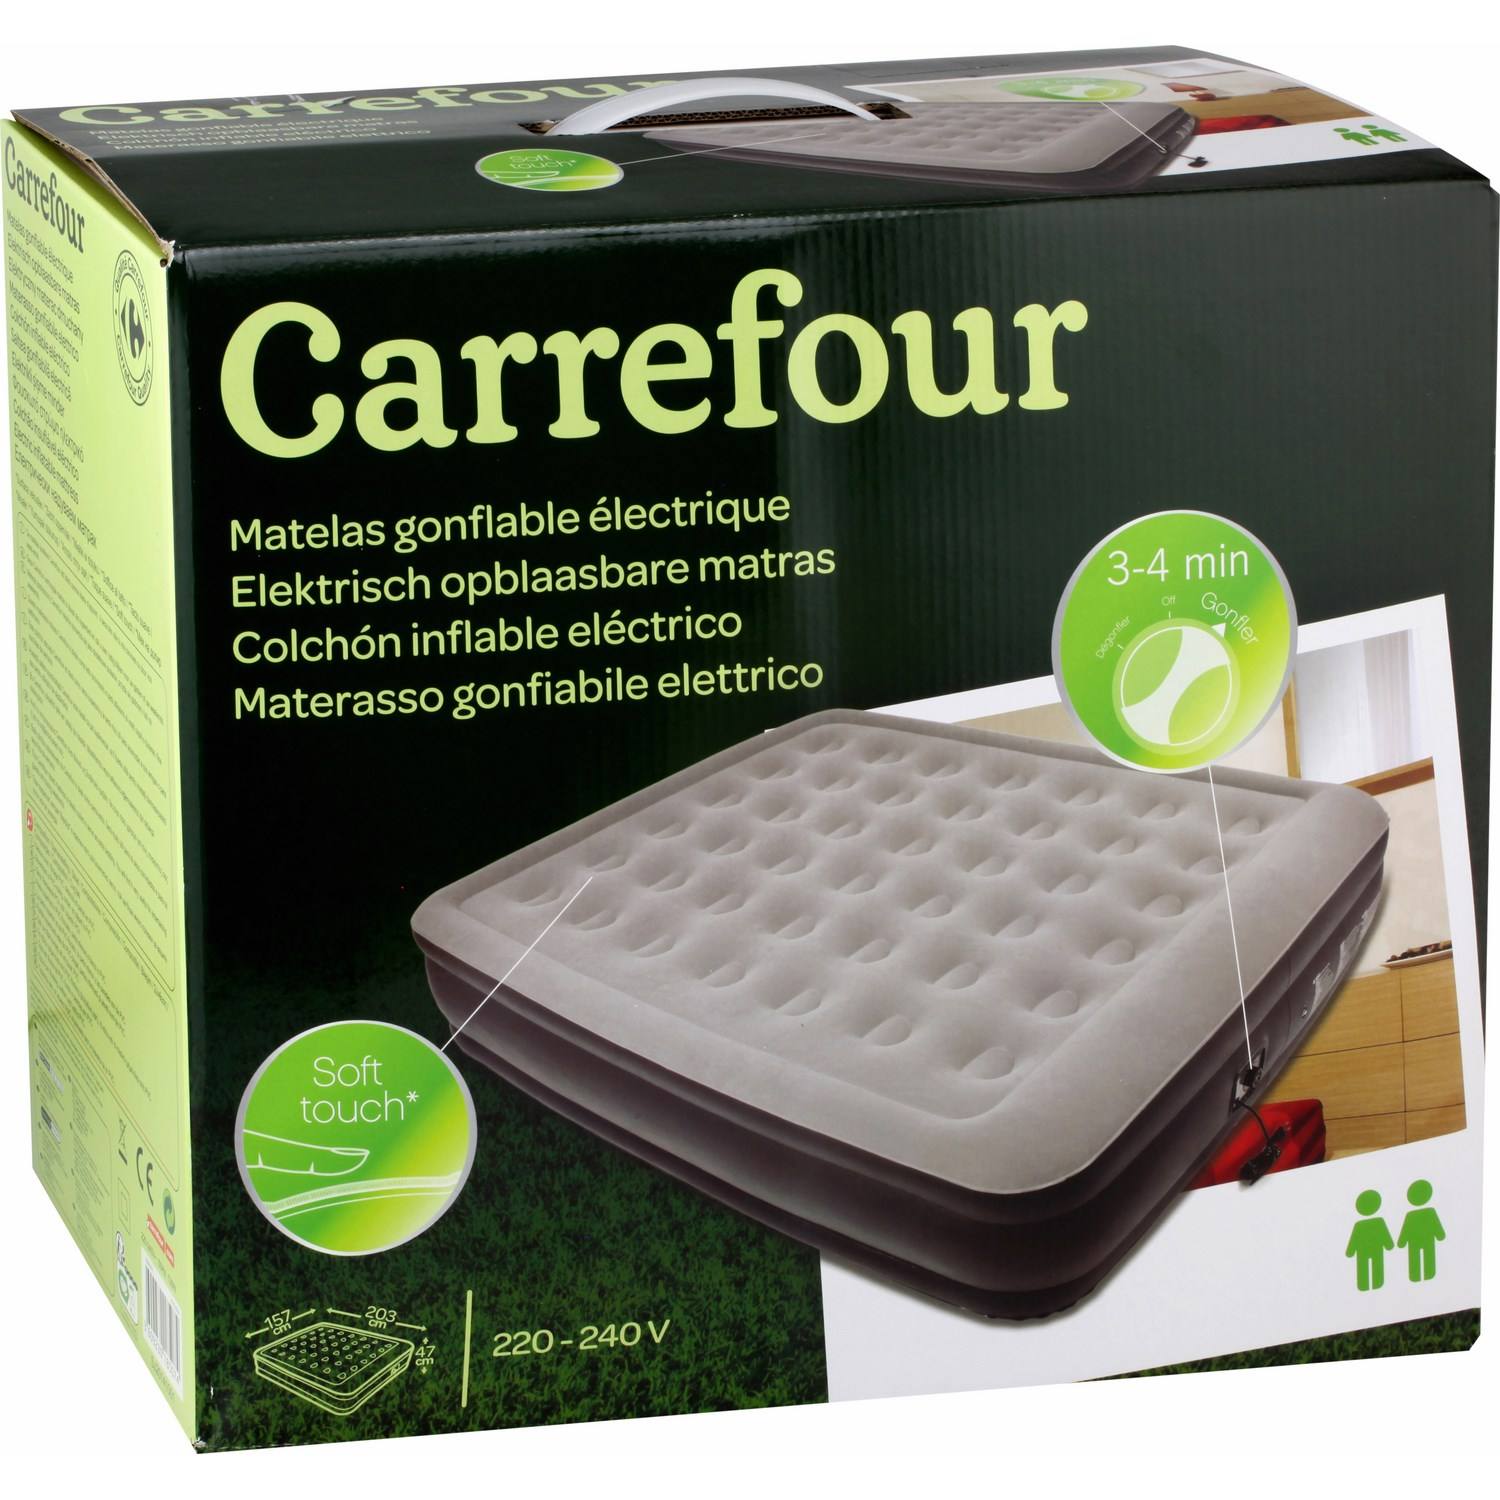 matelas gonflable intex 2 places carrefour. Black Bedroom Furniture Sets. Home Design Ideas